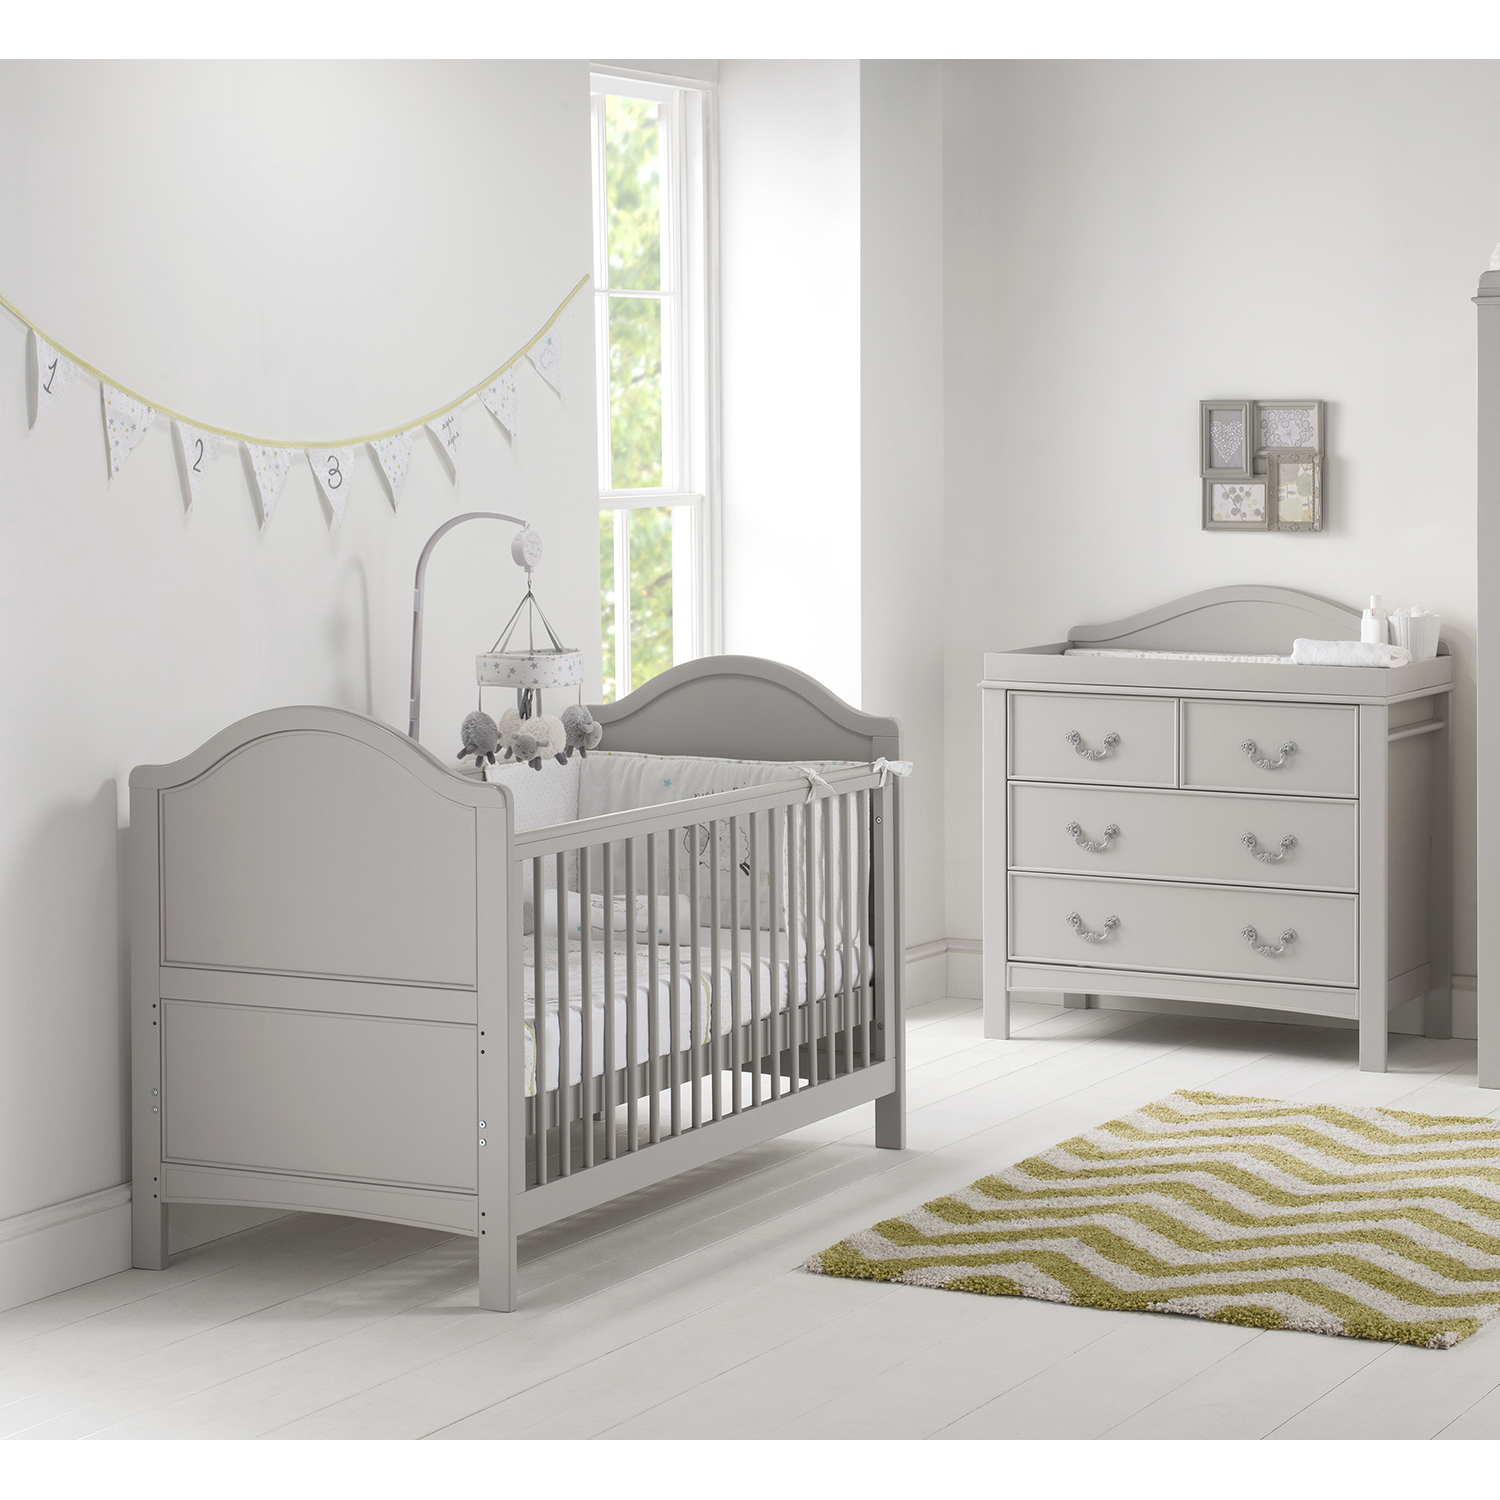 nursery furniture sets east coast toulouse 2 piece roomset LWKYAMG